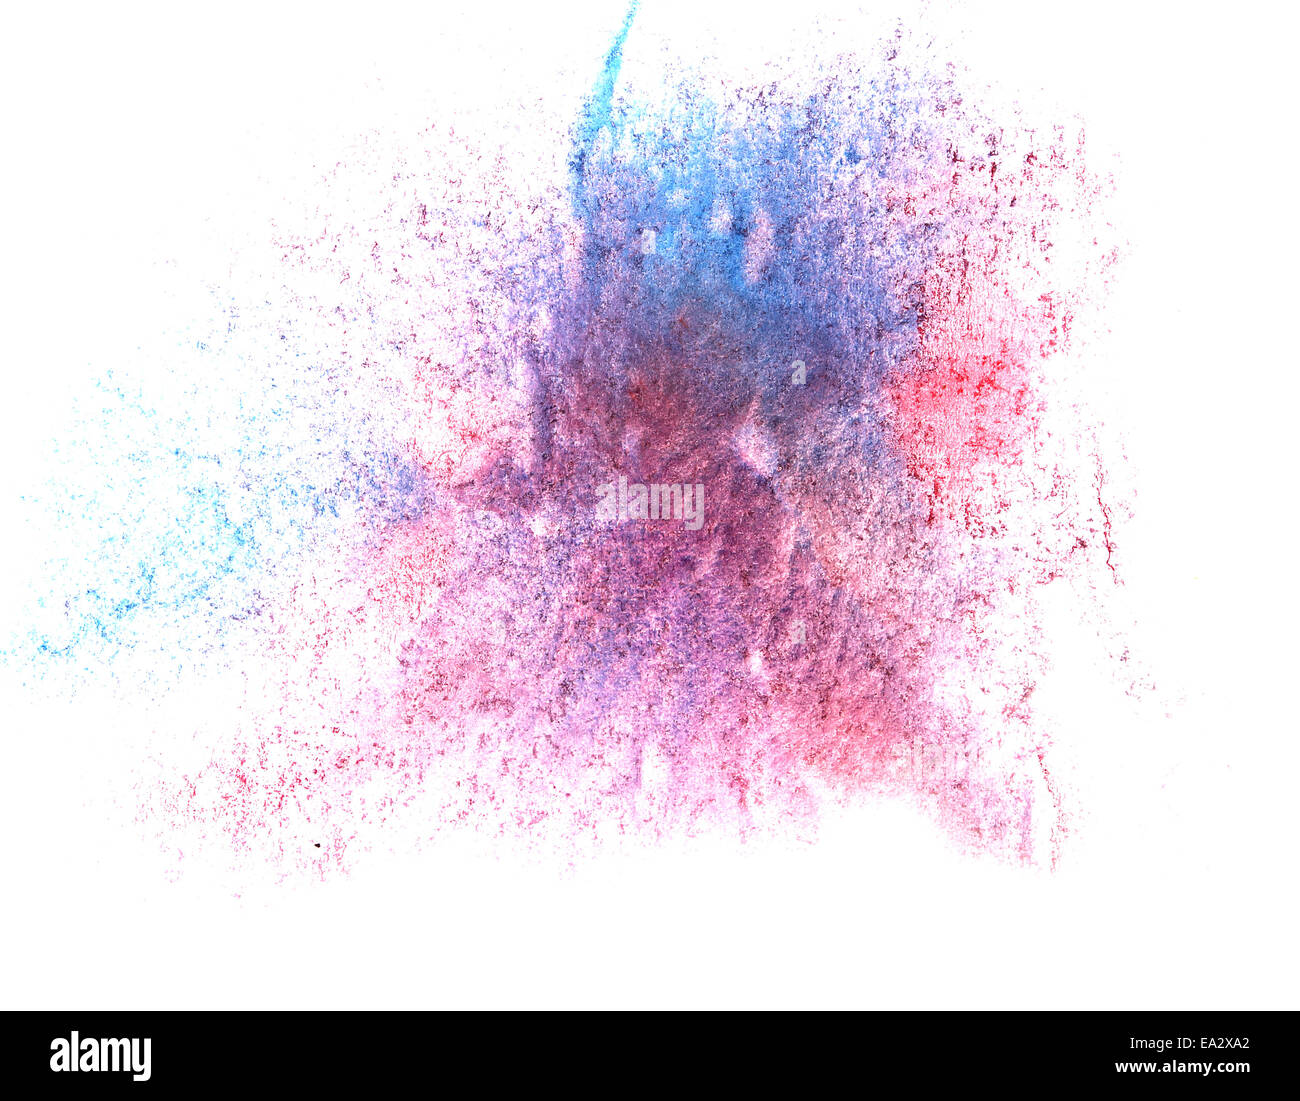 Drawing Red Lines With Blue Ink : Art watercolor red blue ink paint blob watercolour splash